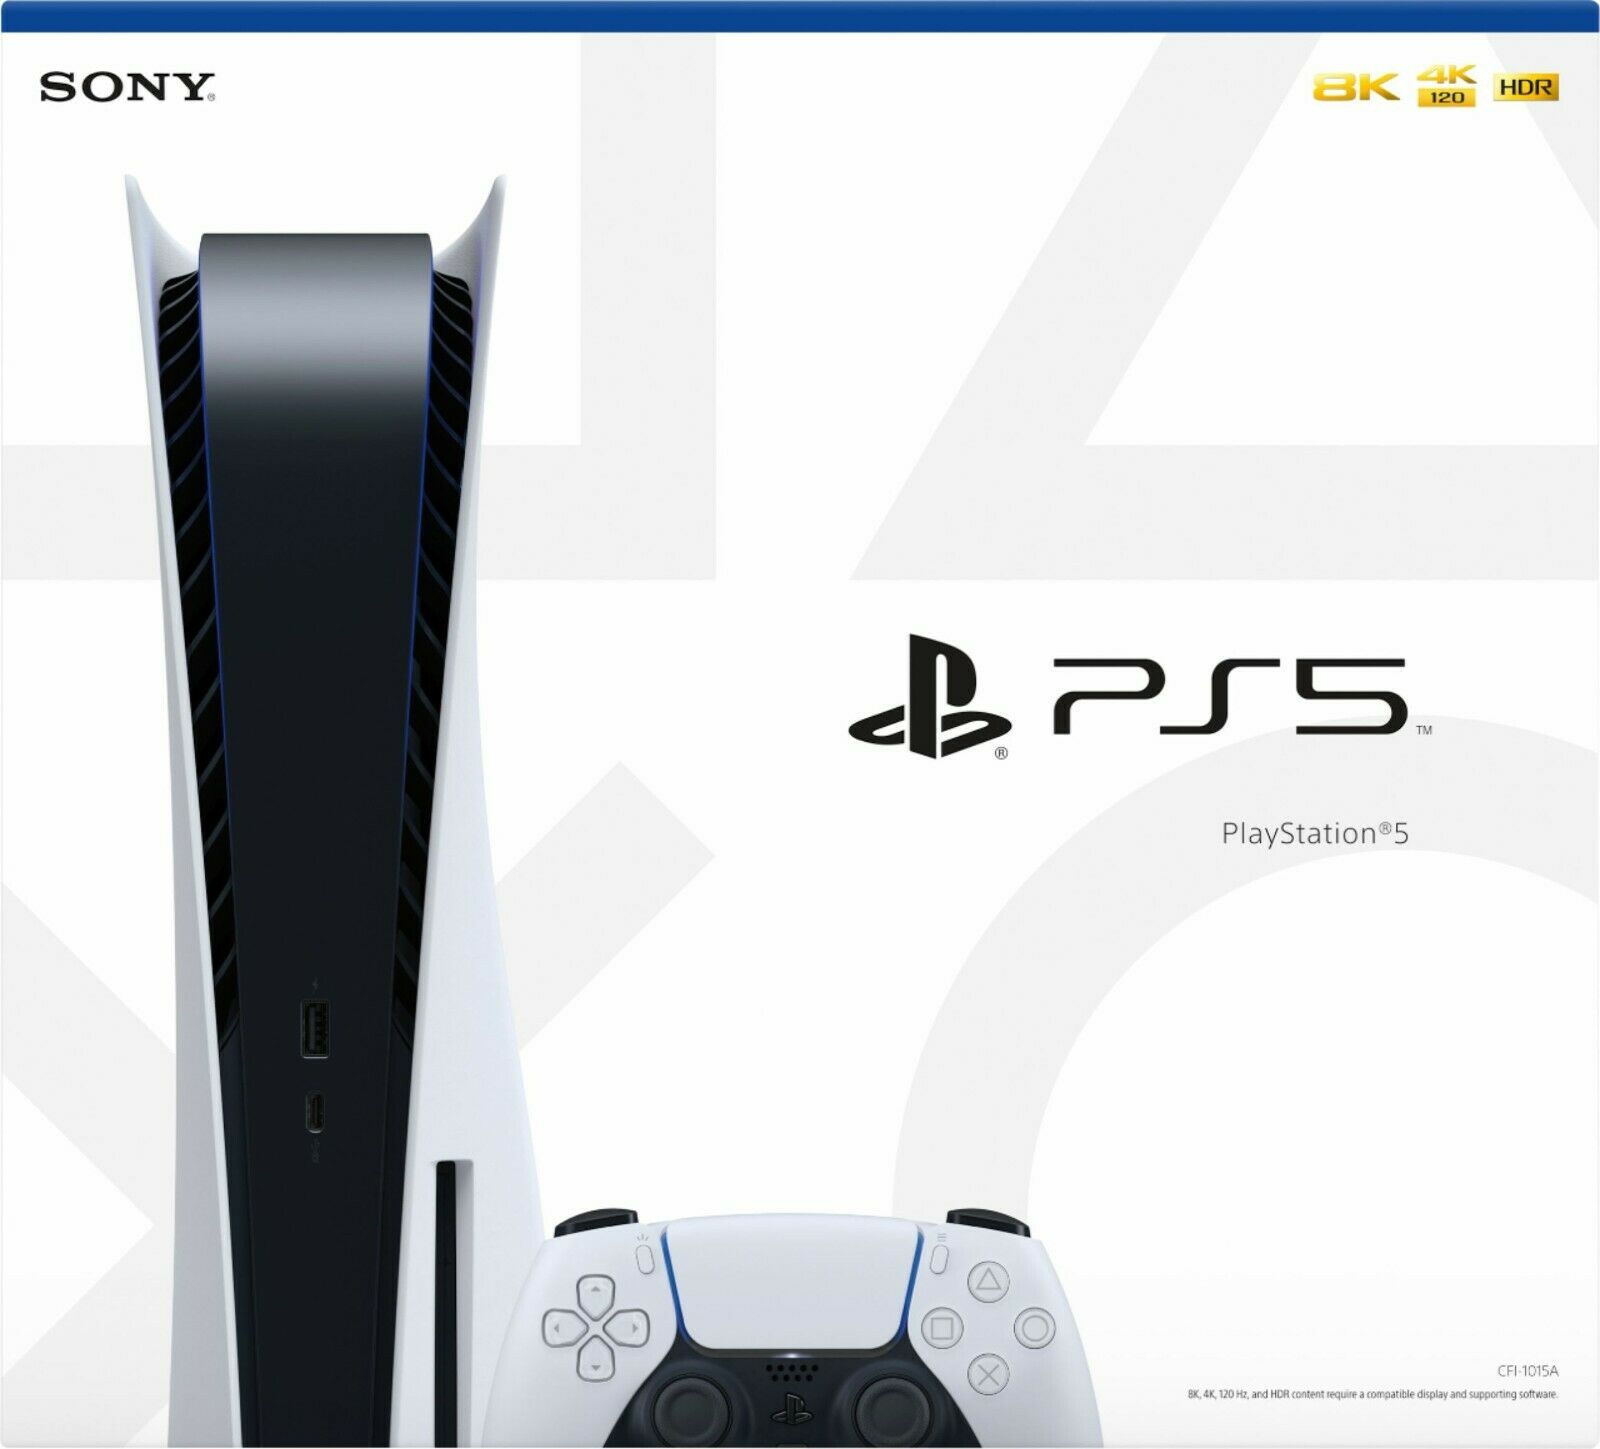 Sony PS5 Playstation 5 Disc Blu-Ray Edition Console - White - IN HAND FAST SHIP